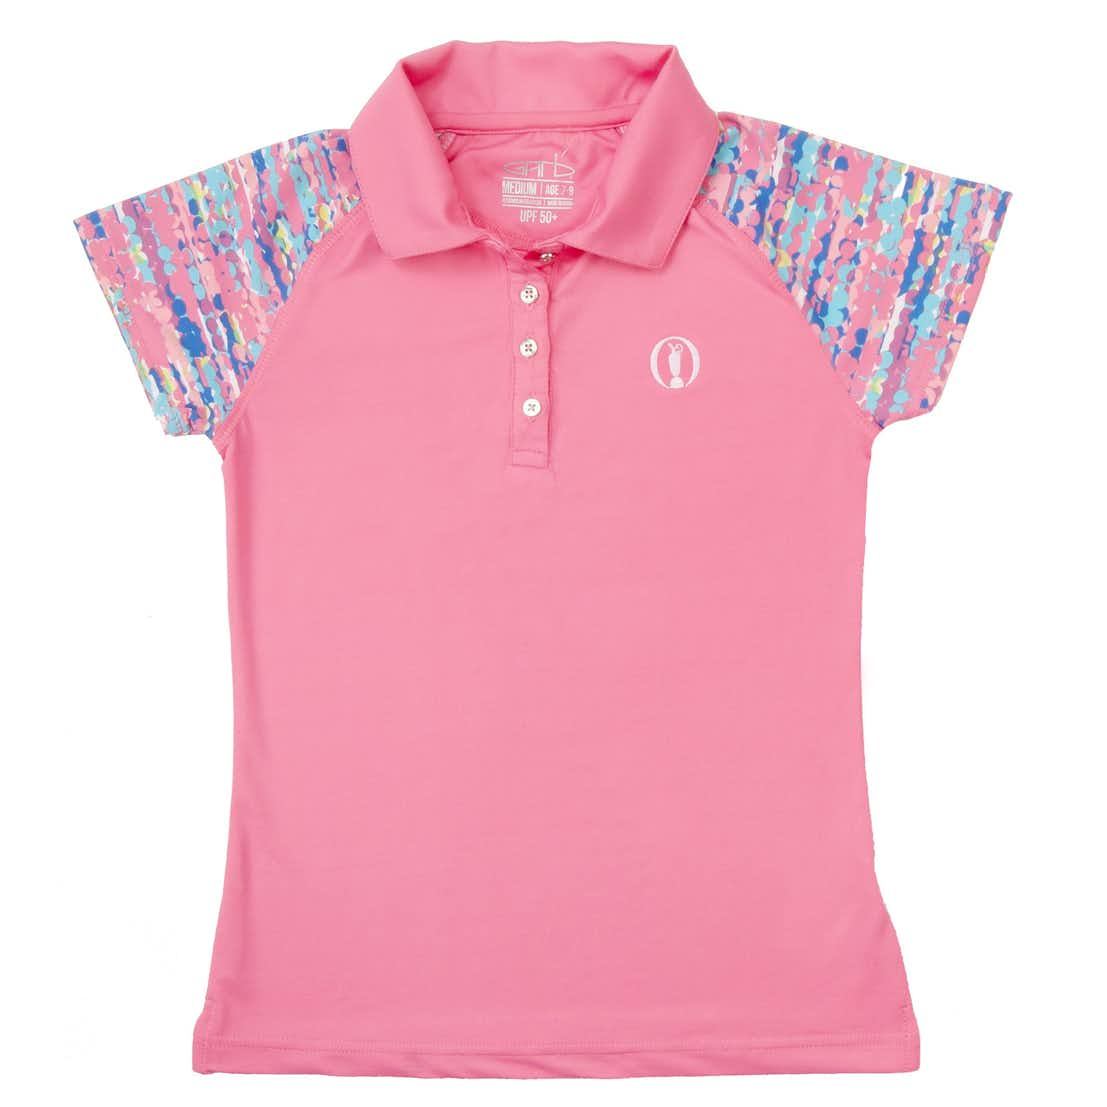 The Open Children's Plain Polo - Pink